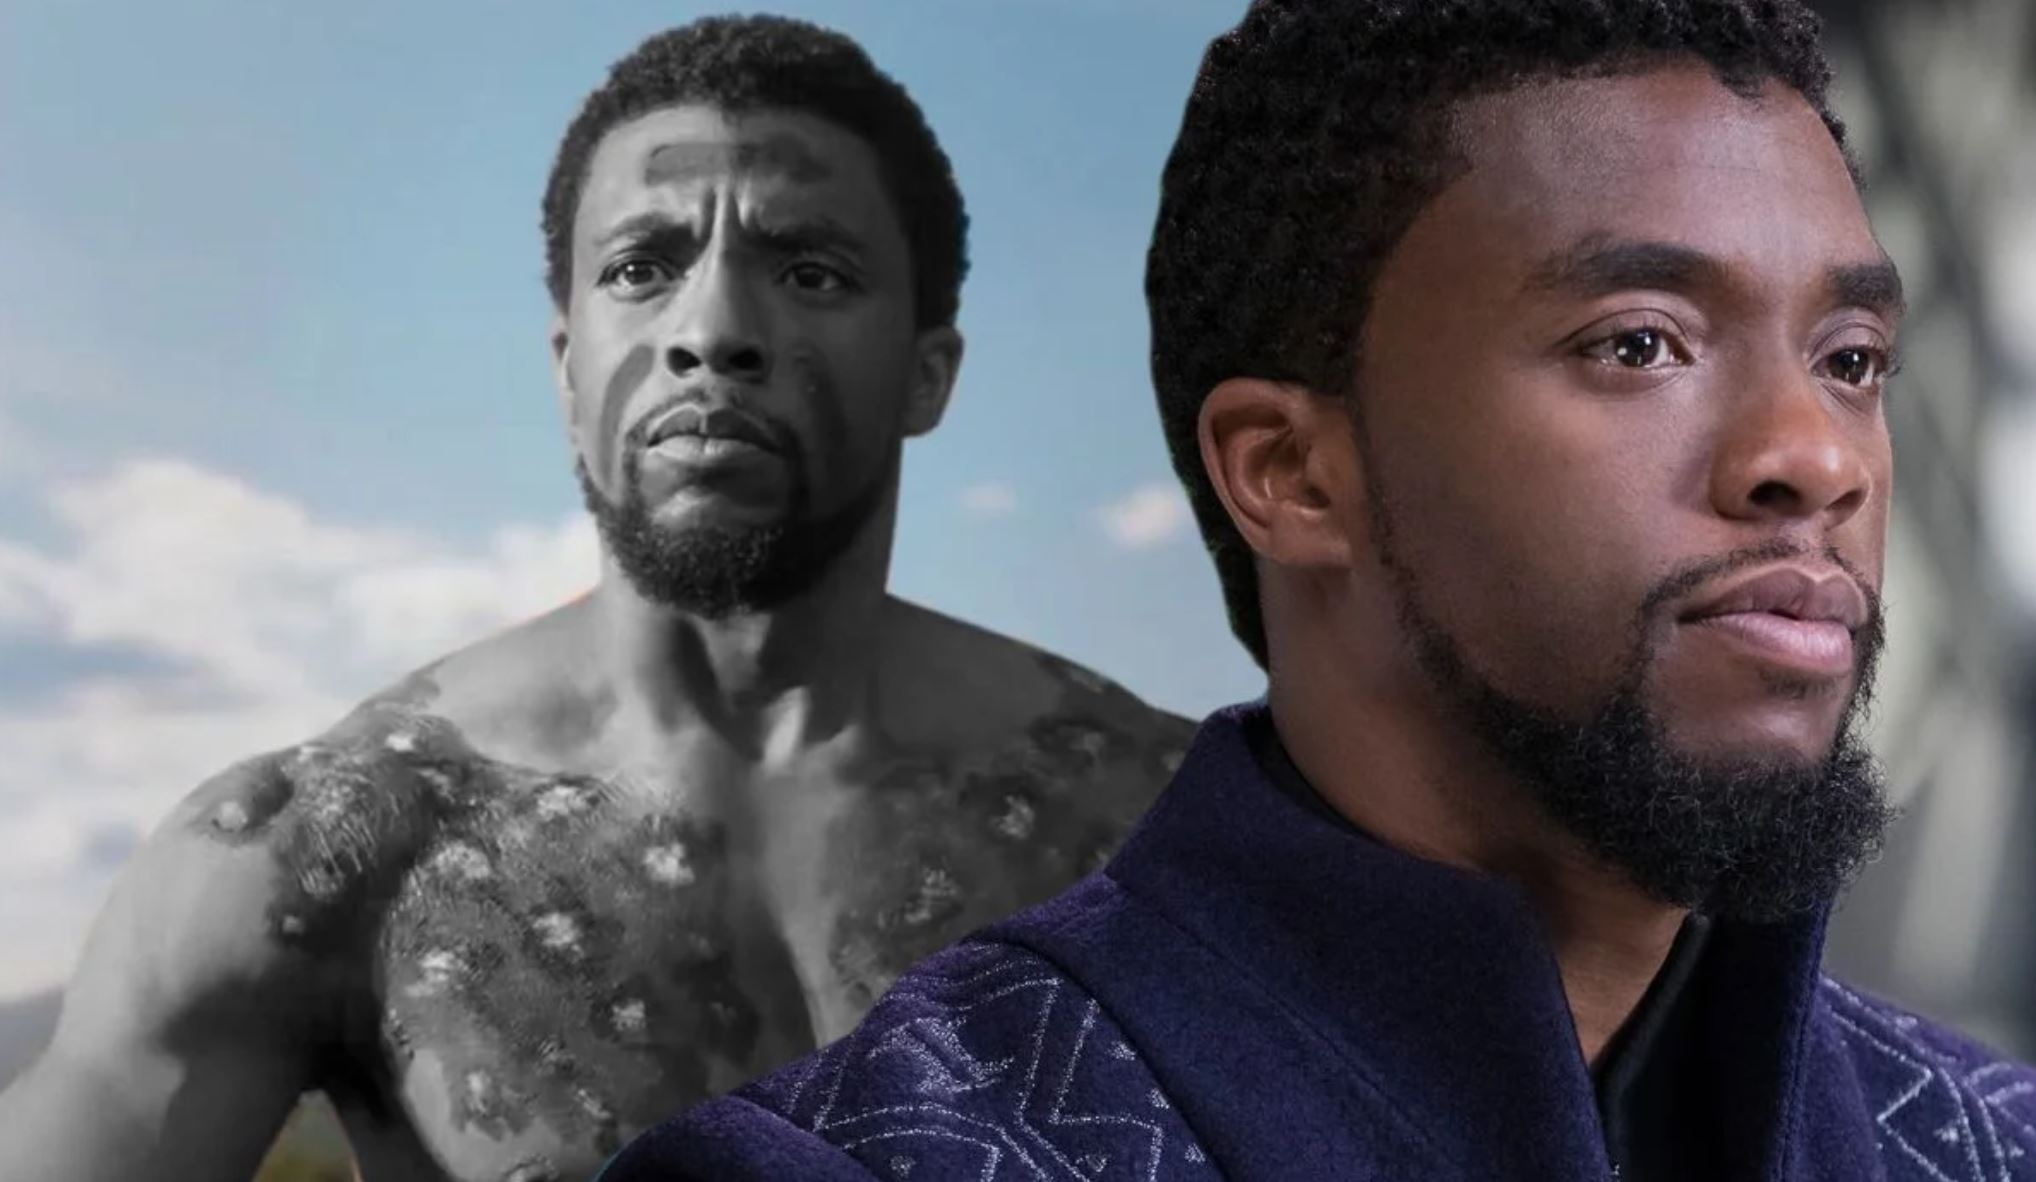 'Black Panther' star, Chadwick Boseman is dead